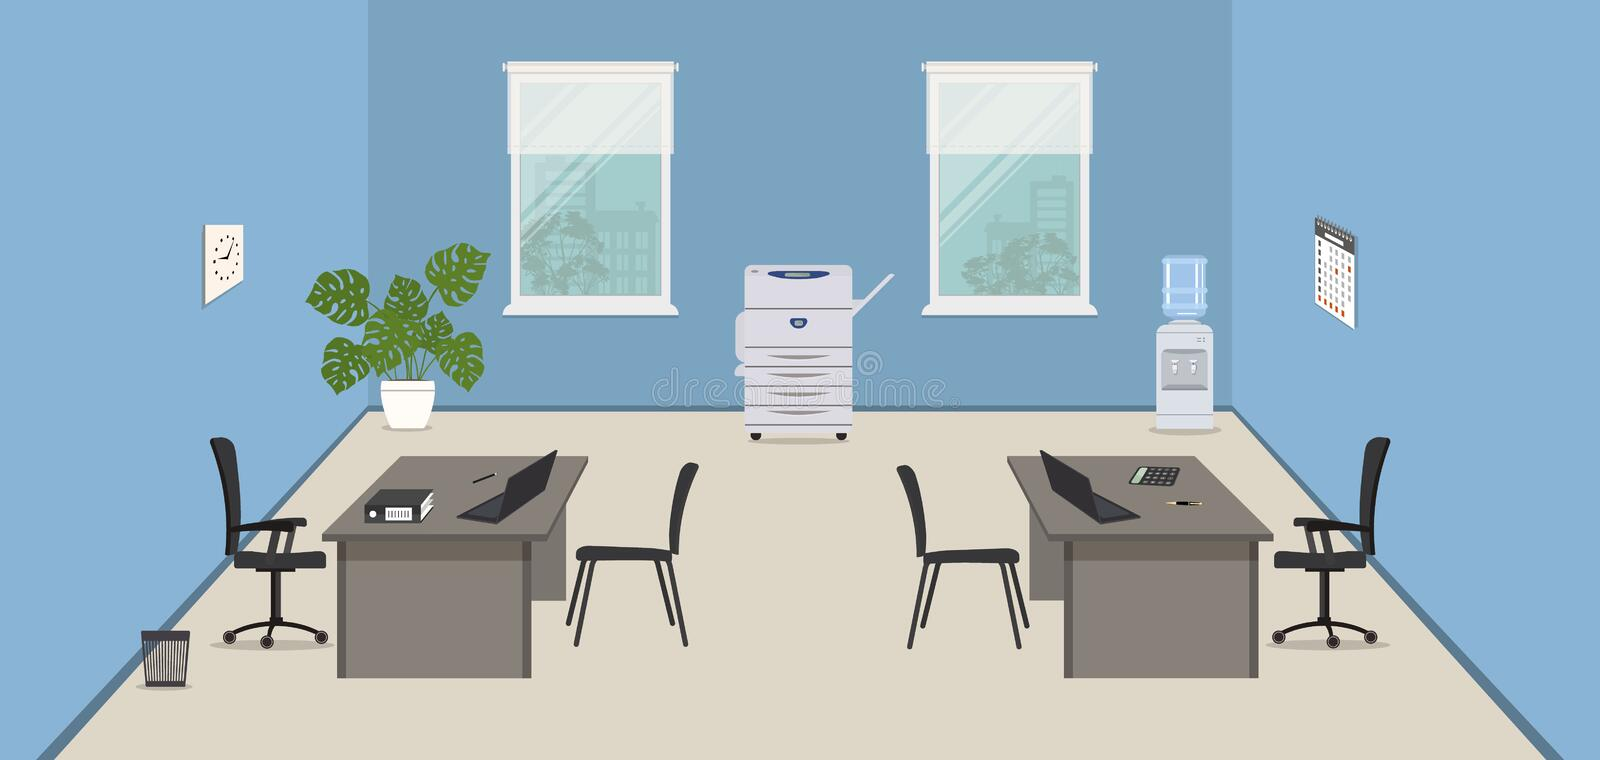 Blue office room with gray desks, black chairs, a copy machine and a water cooler, royalty free illustration